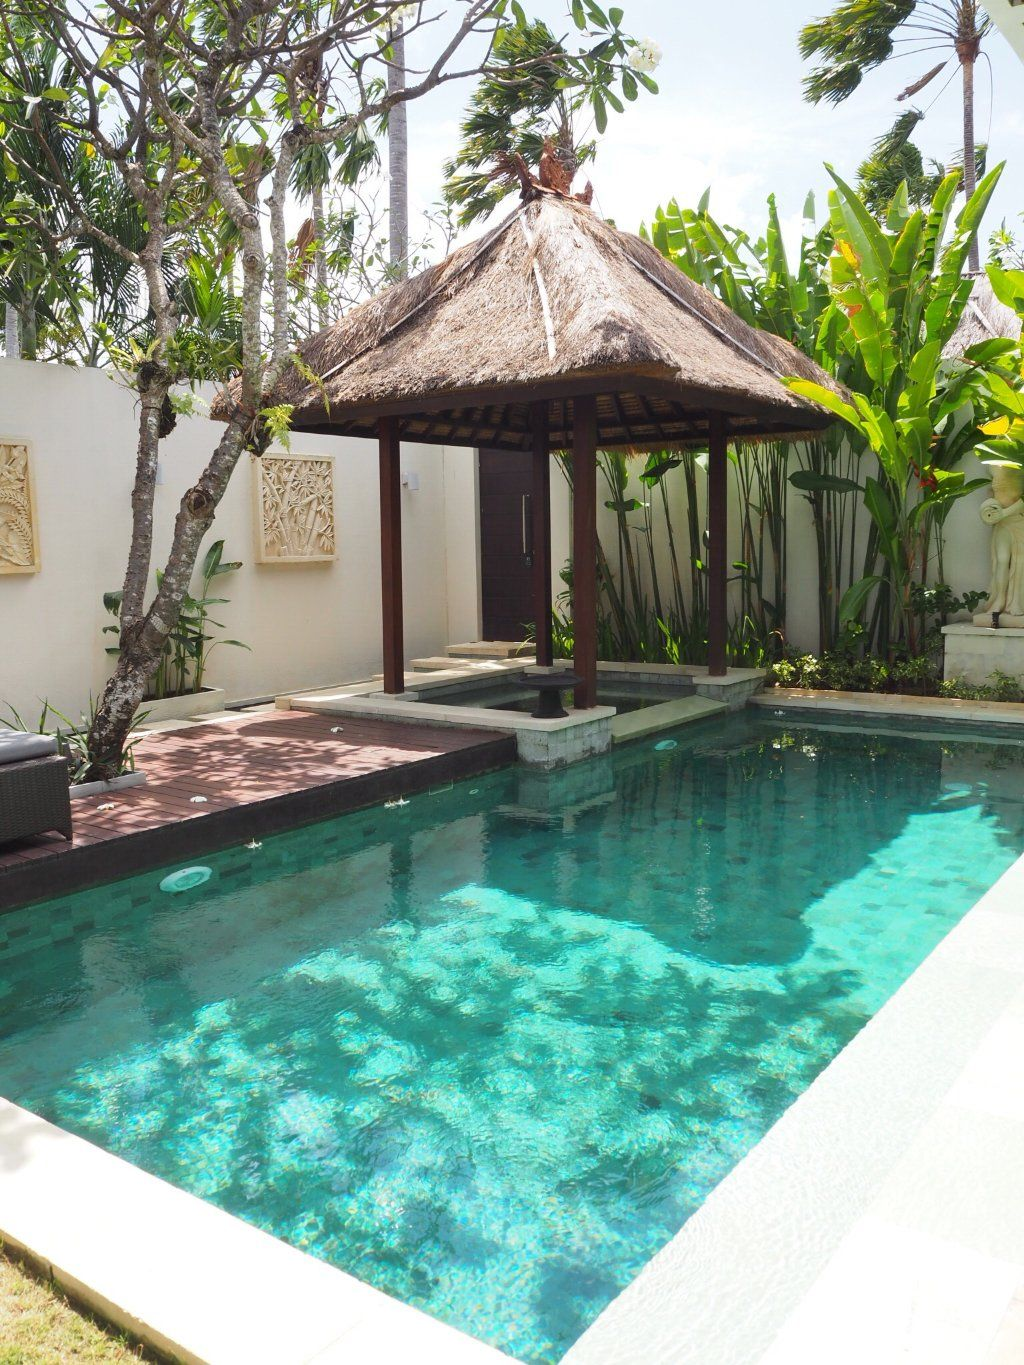 Jacuzzi Pool Villa Bali Chandra Luxury Villas Bali 2017 Prices Reviews And Photos